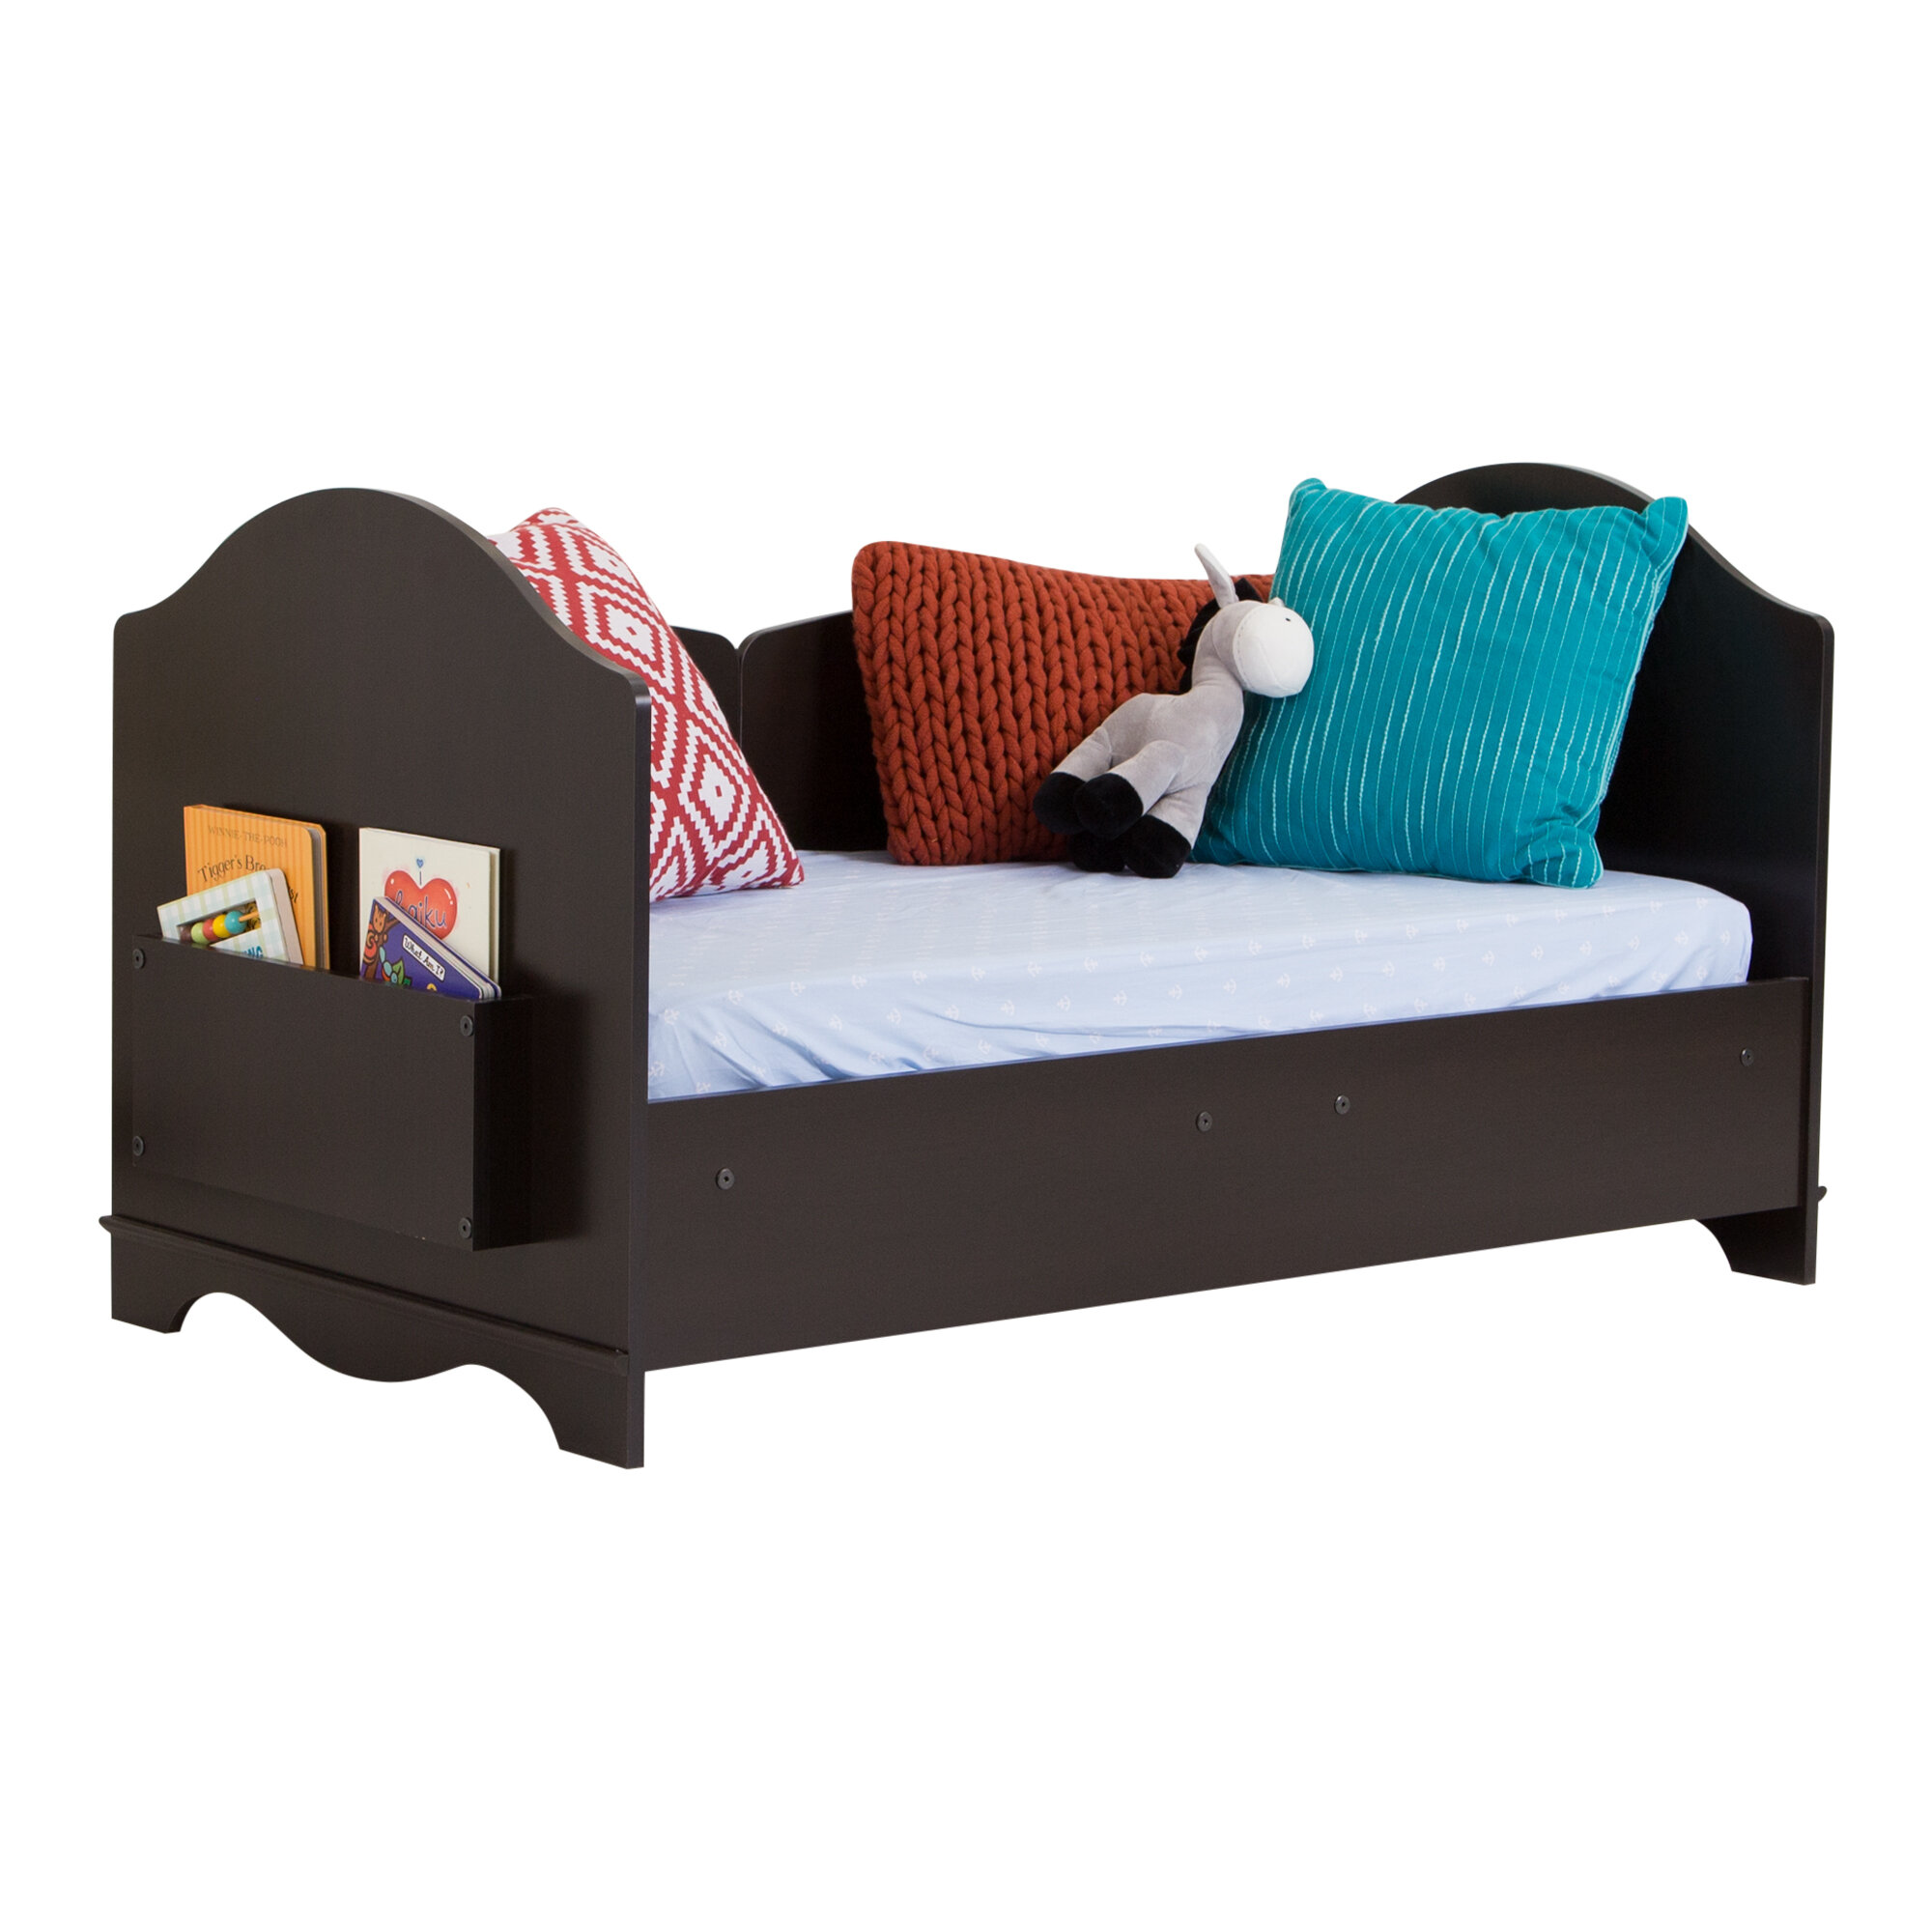 Savannah Convertible Toddler Bed New Making Purchase Of